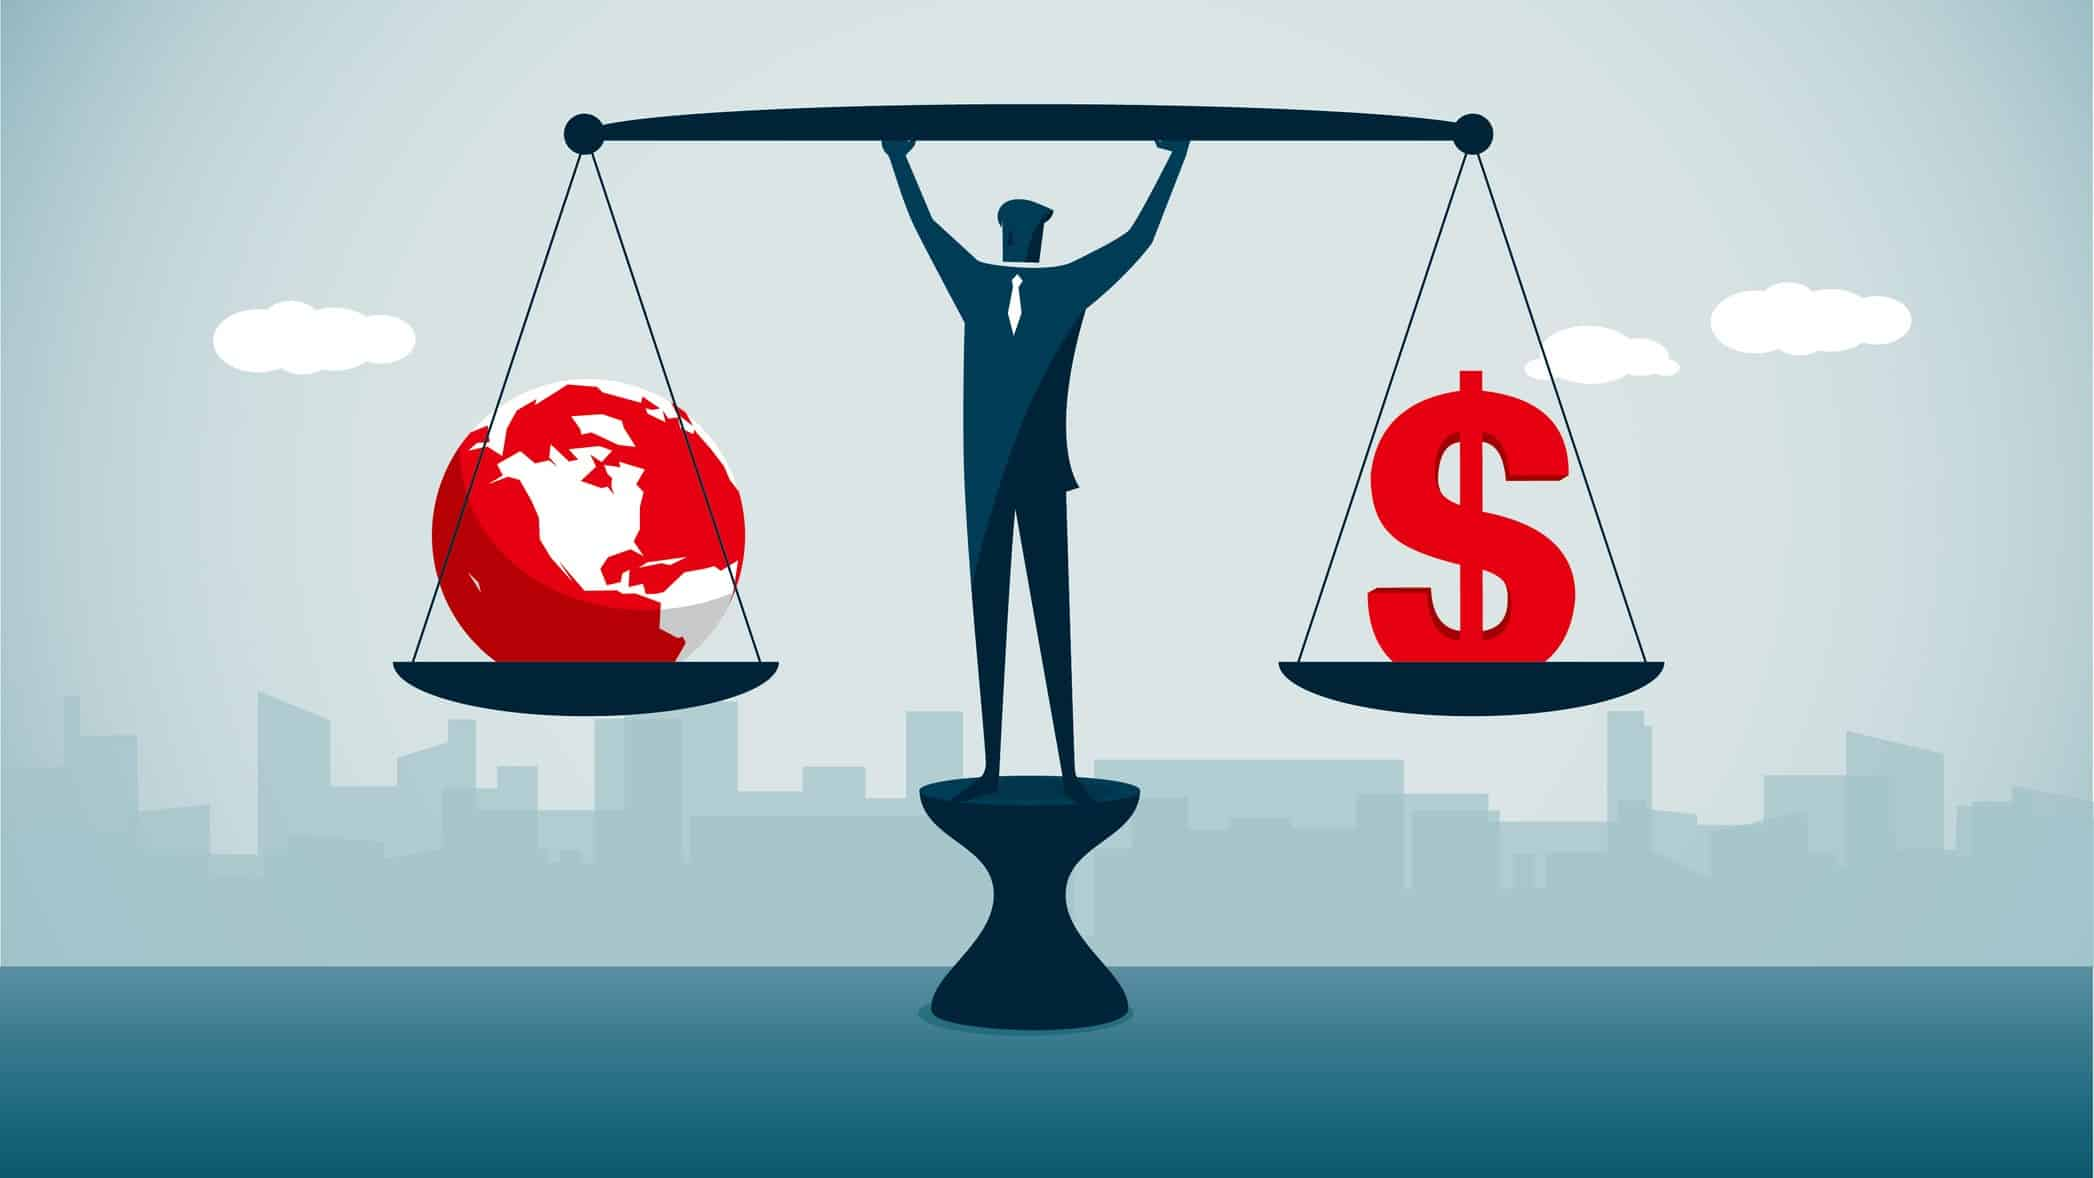 Graphic of suited man balancing scales with a dollar symbol and a world globe